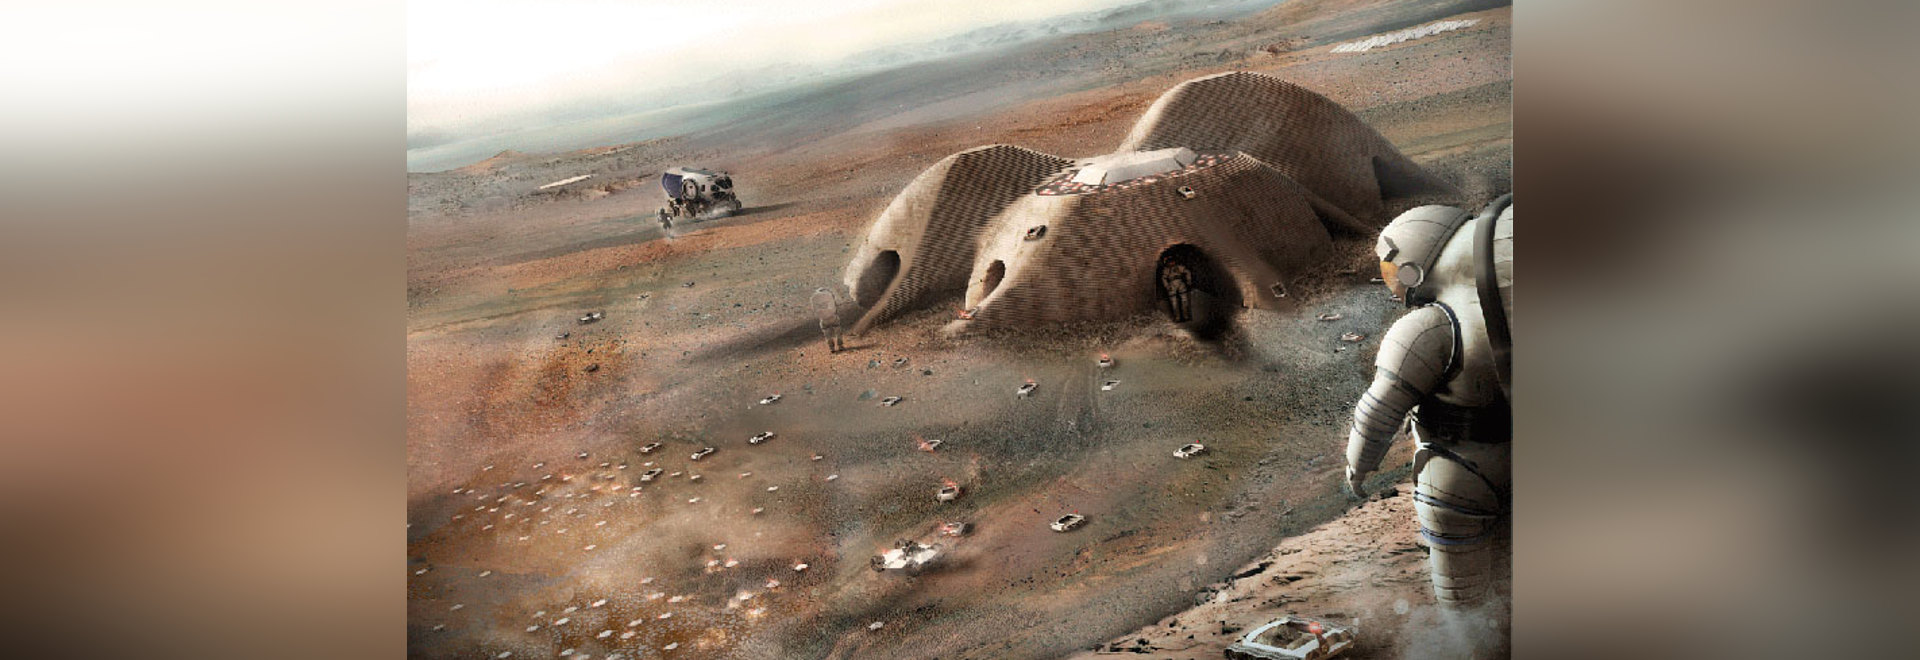 the habitat will be delivered in two stages prior to the arrival of the astronauts